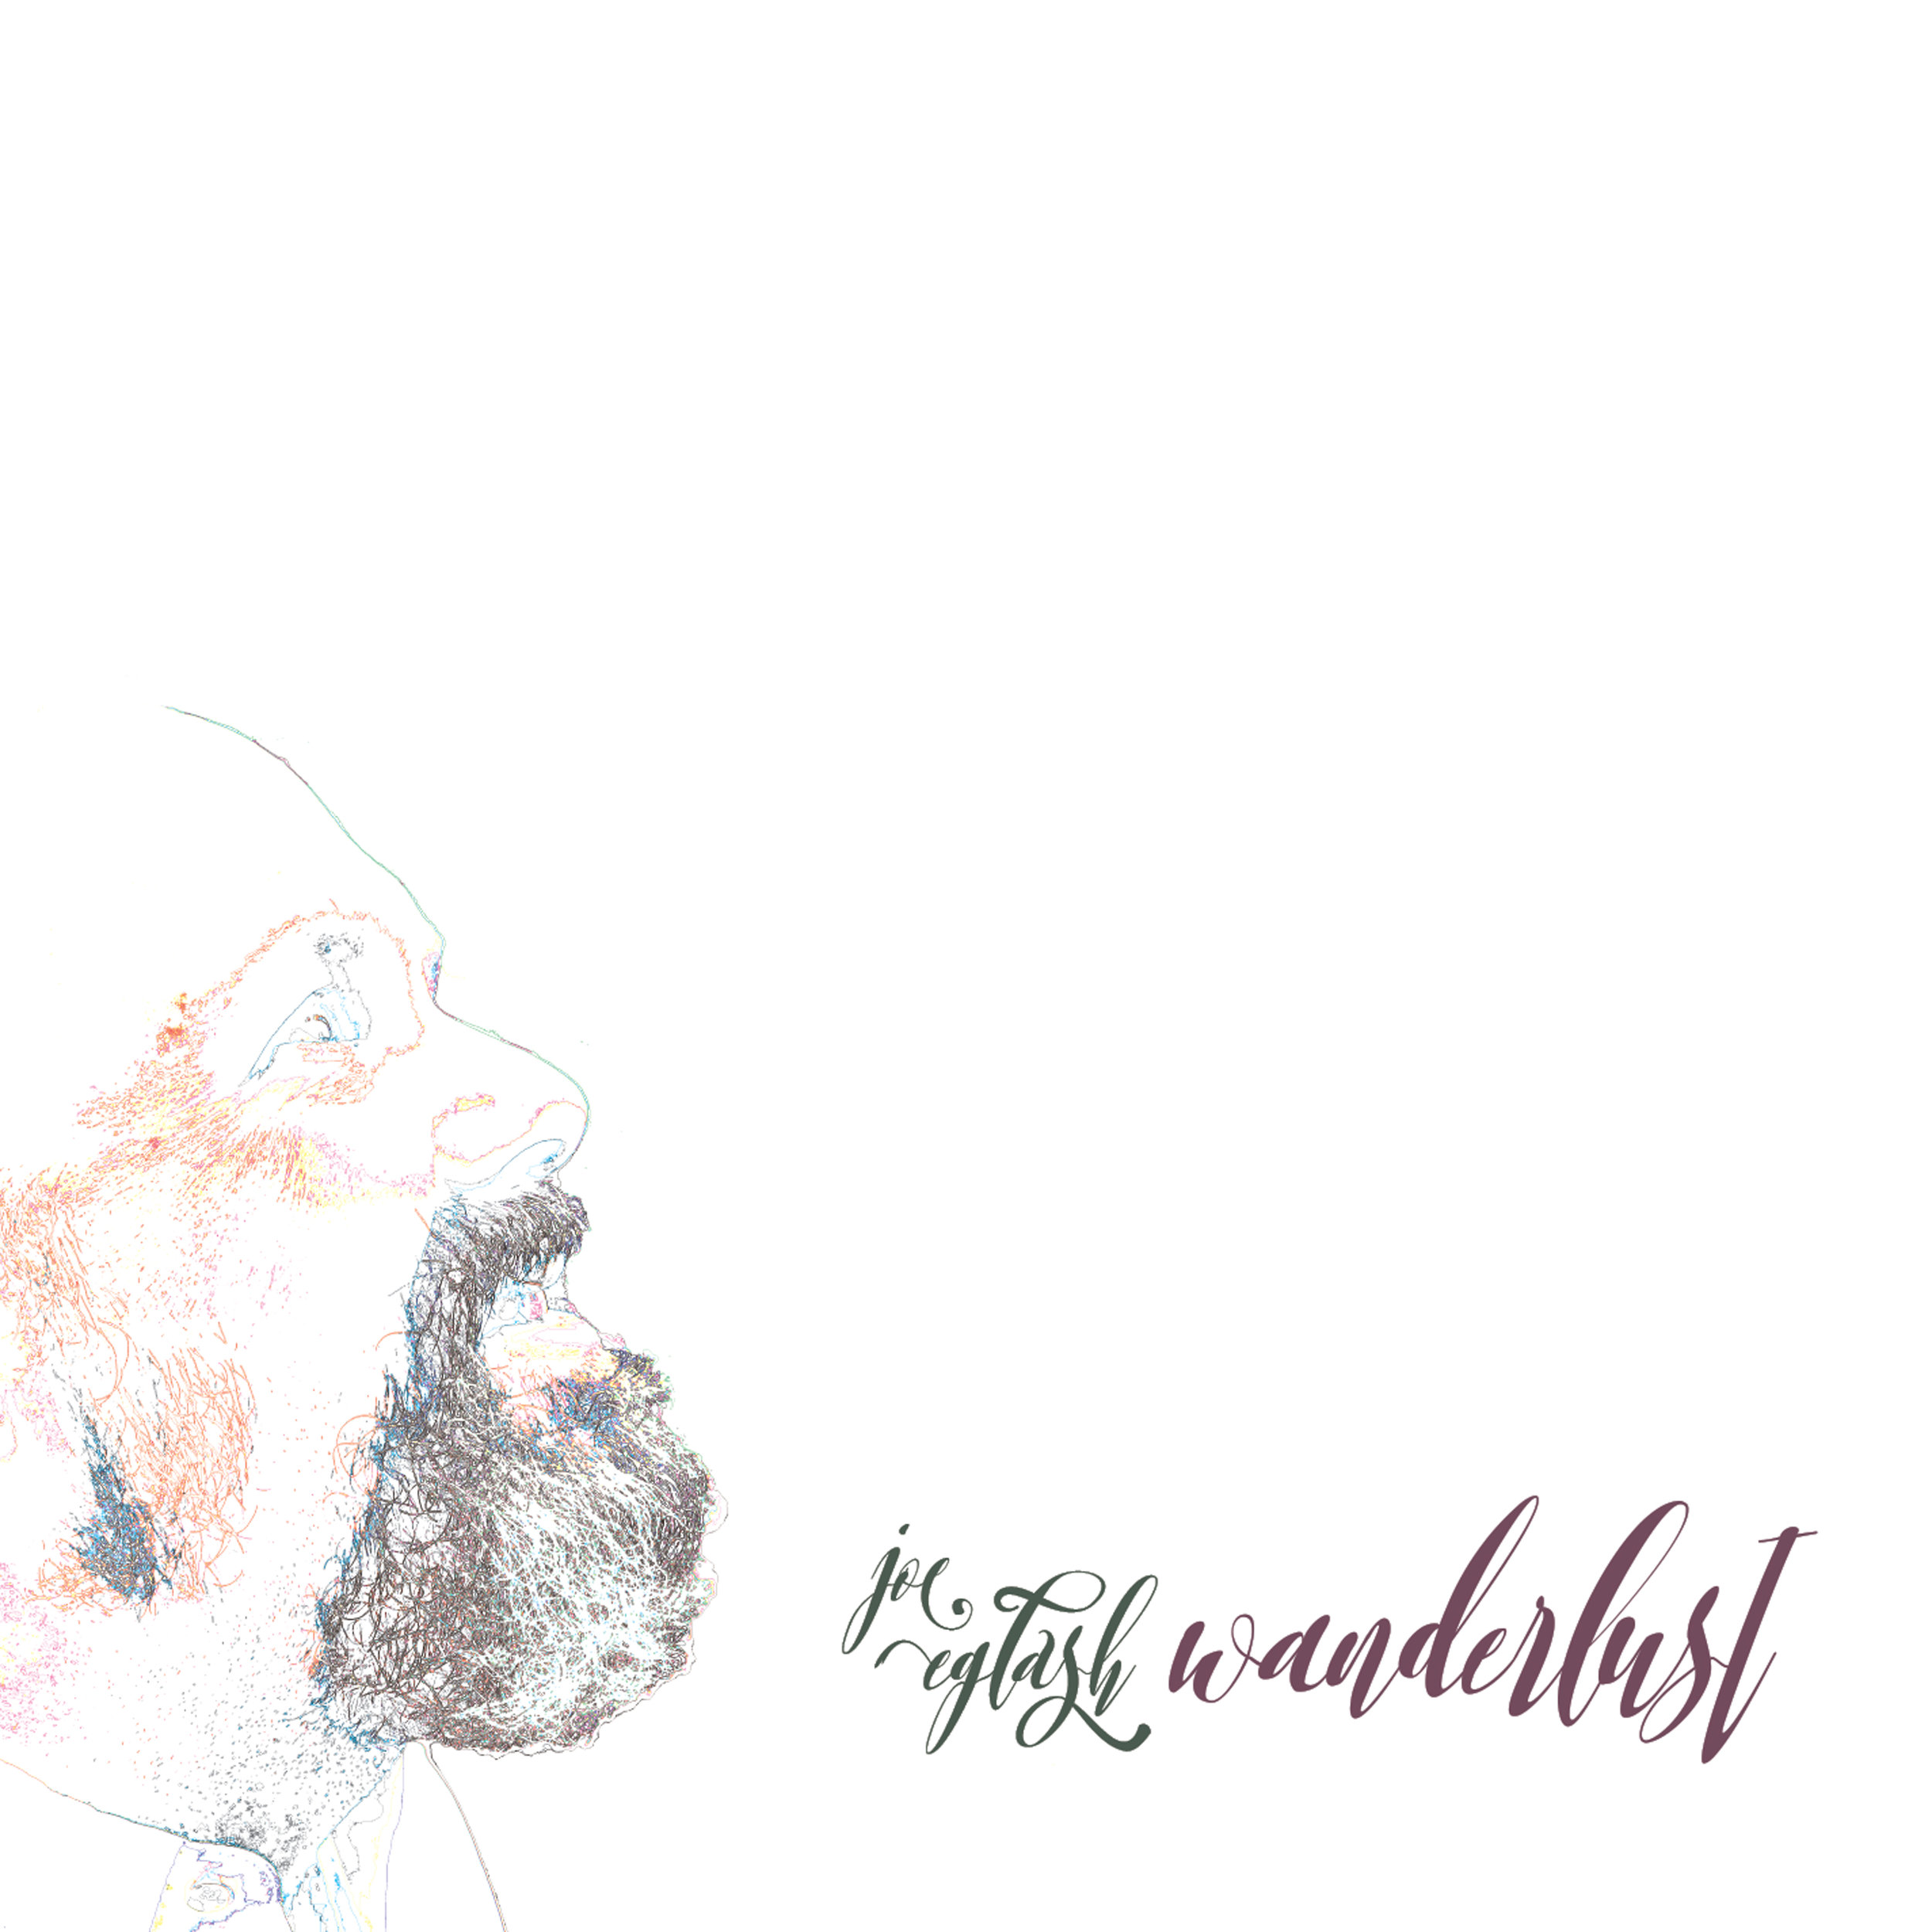 WANDERLUST (2018) - Wanderlust is Joe Eglash's fifth solo album, and second in a row (along with 2016's Transitions) to offer a strong theme: in this case, wanderlust, contentedness, and the pursuit of happiness. This is real music of human imperfection, for those living with their eyes open, dealing with all of our common trials—fighting the waves away.Wanderlust has the potential to change you; to give you that muscle memory of a time in your life when you discover a great album.